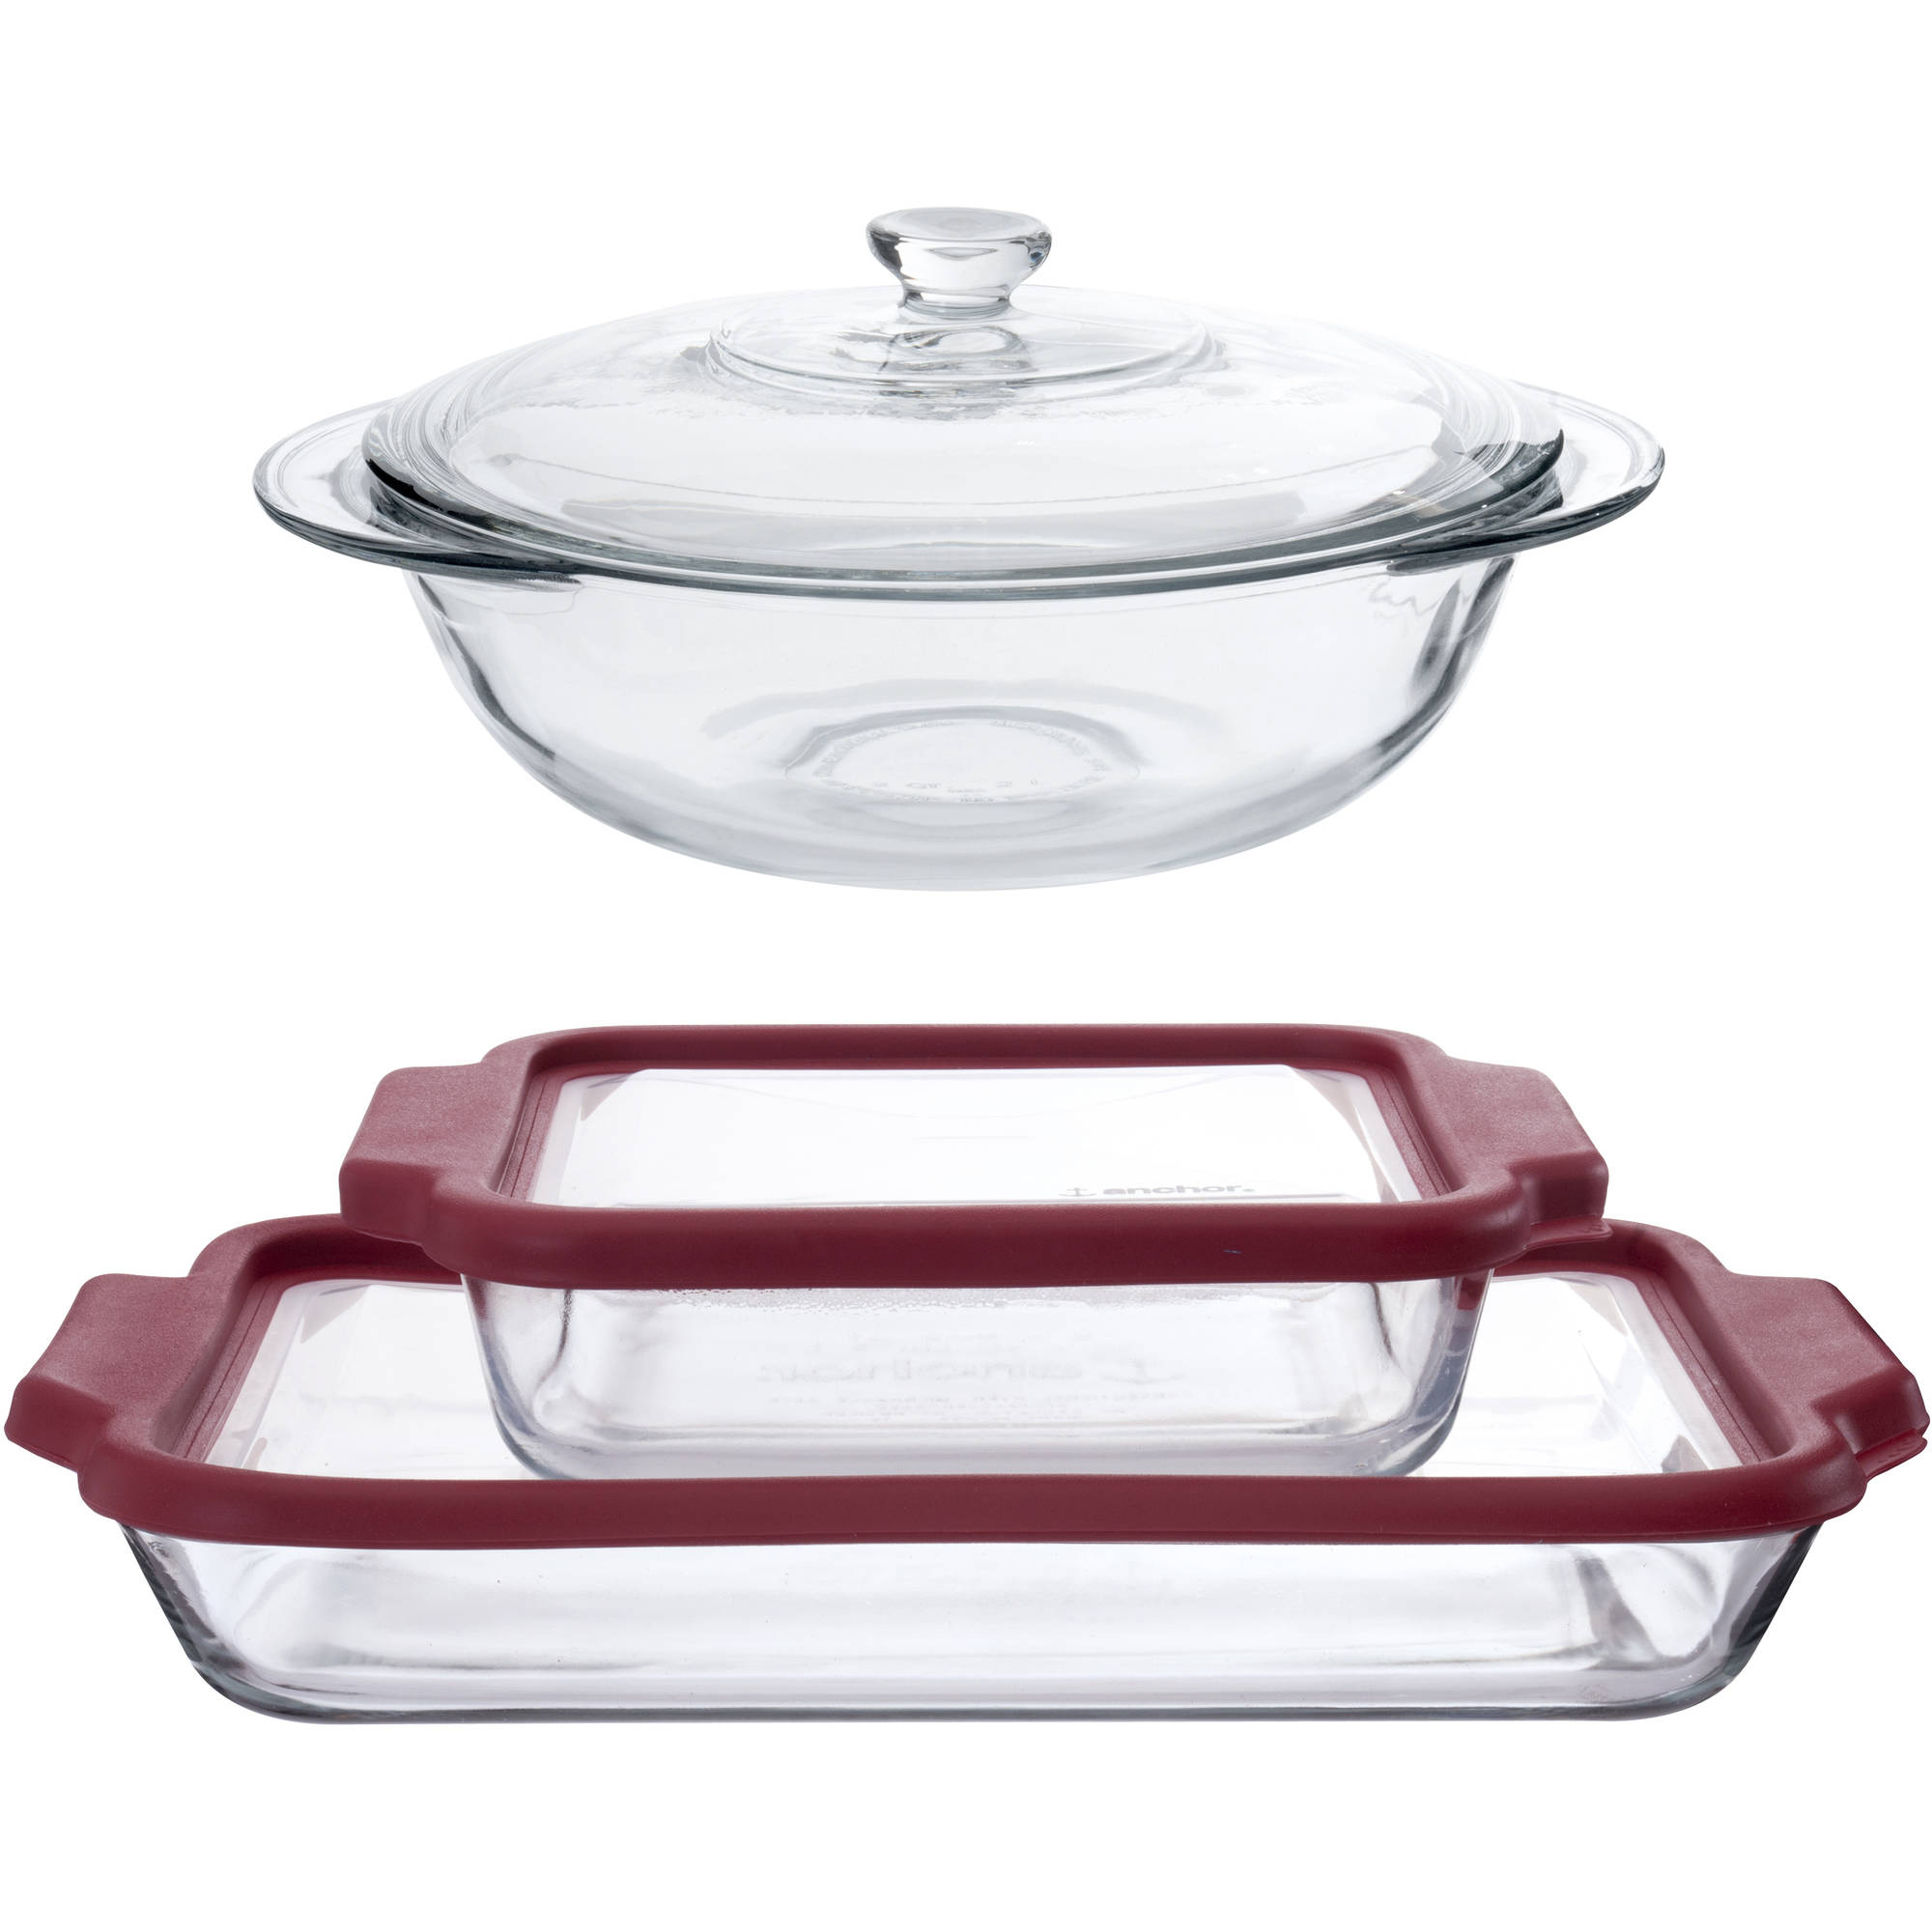 Anchor Hocking 7-Piece TrueFit Bakeware Set with Red Lids by